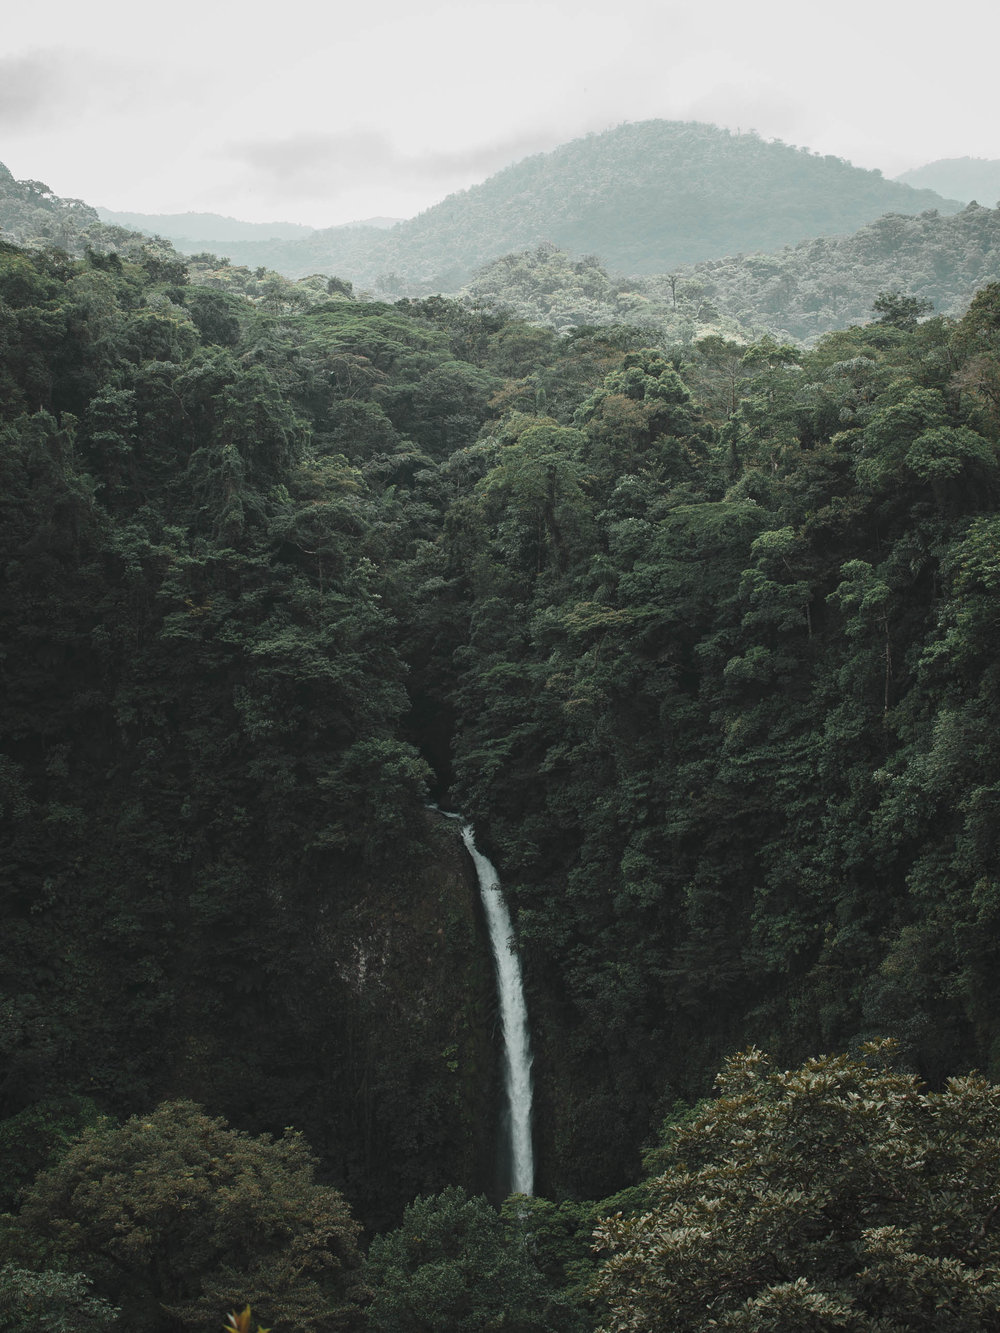 An awesome view of La Fortuna Waterfall in Costa Rica